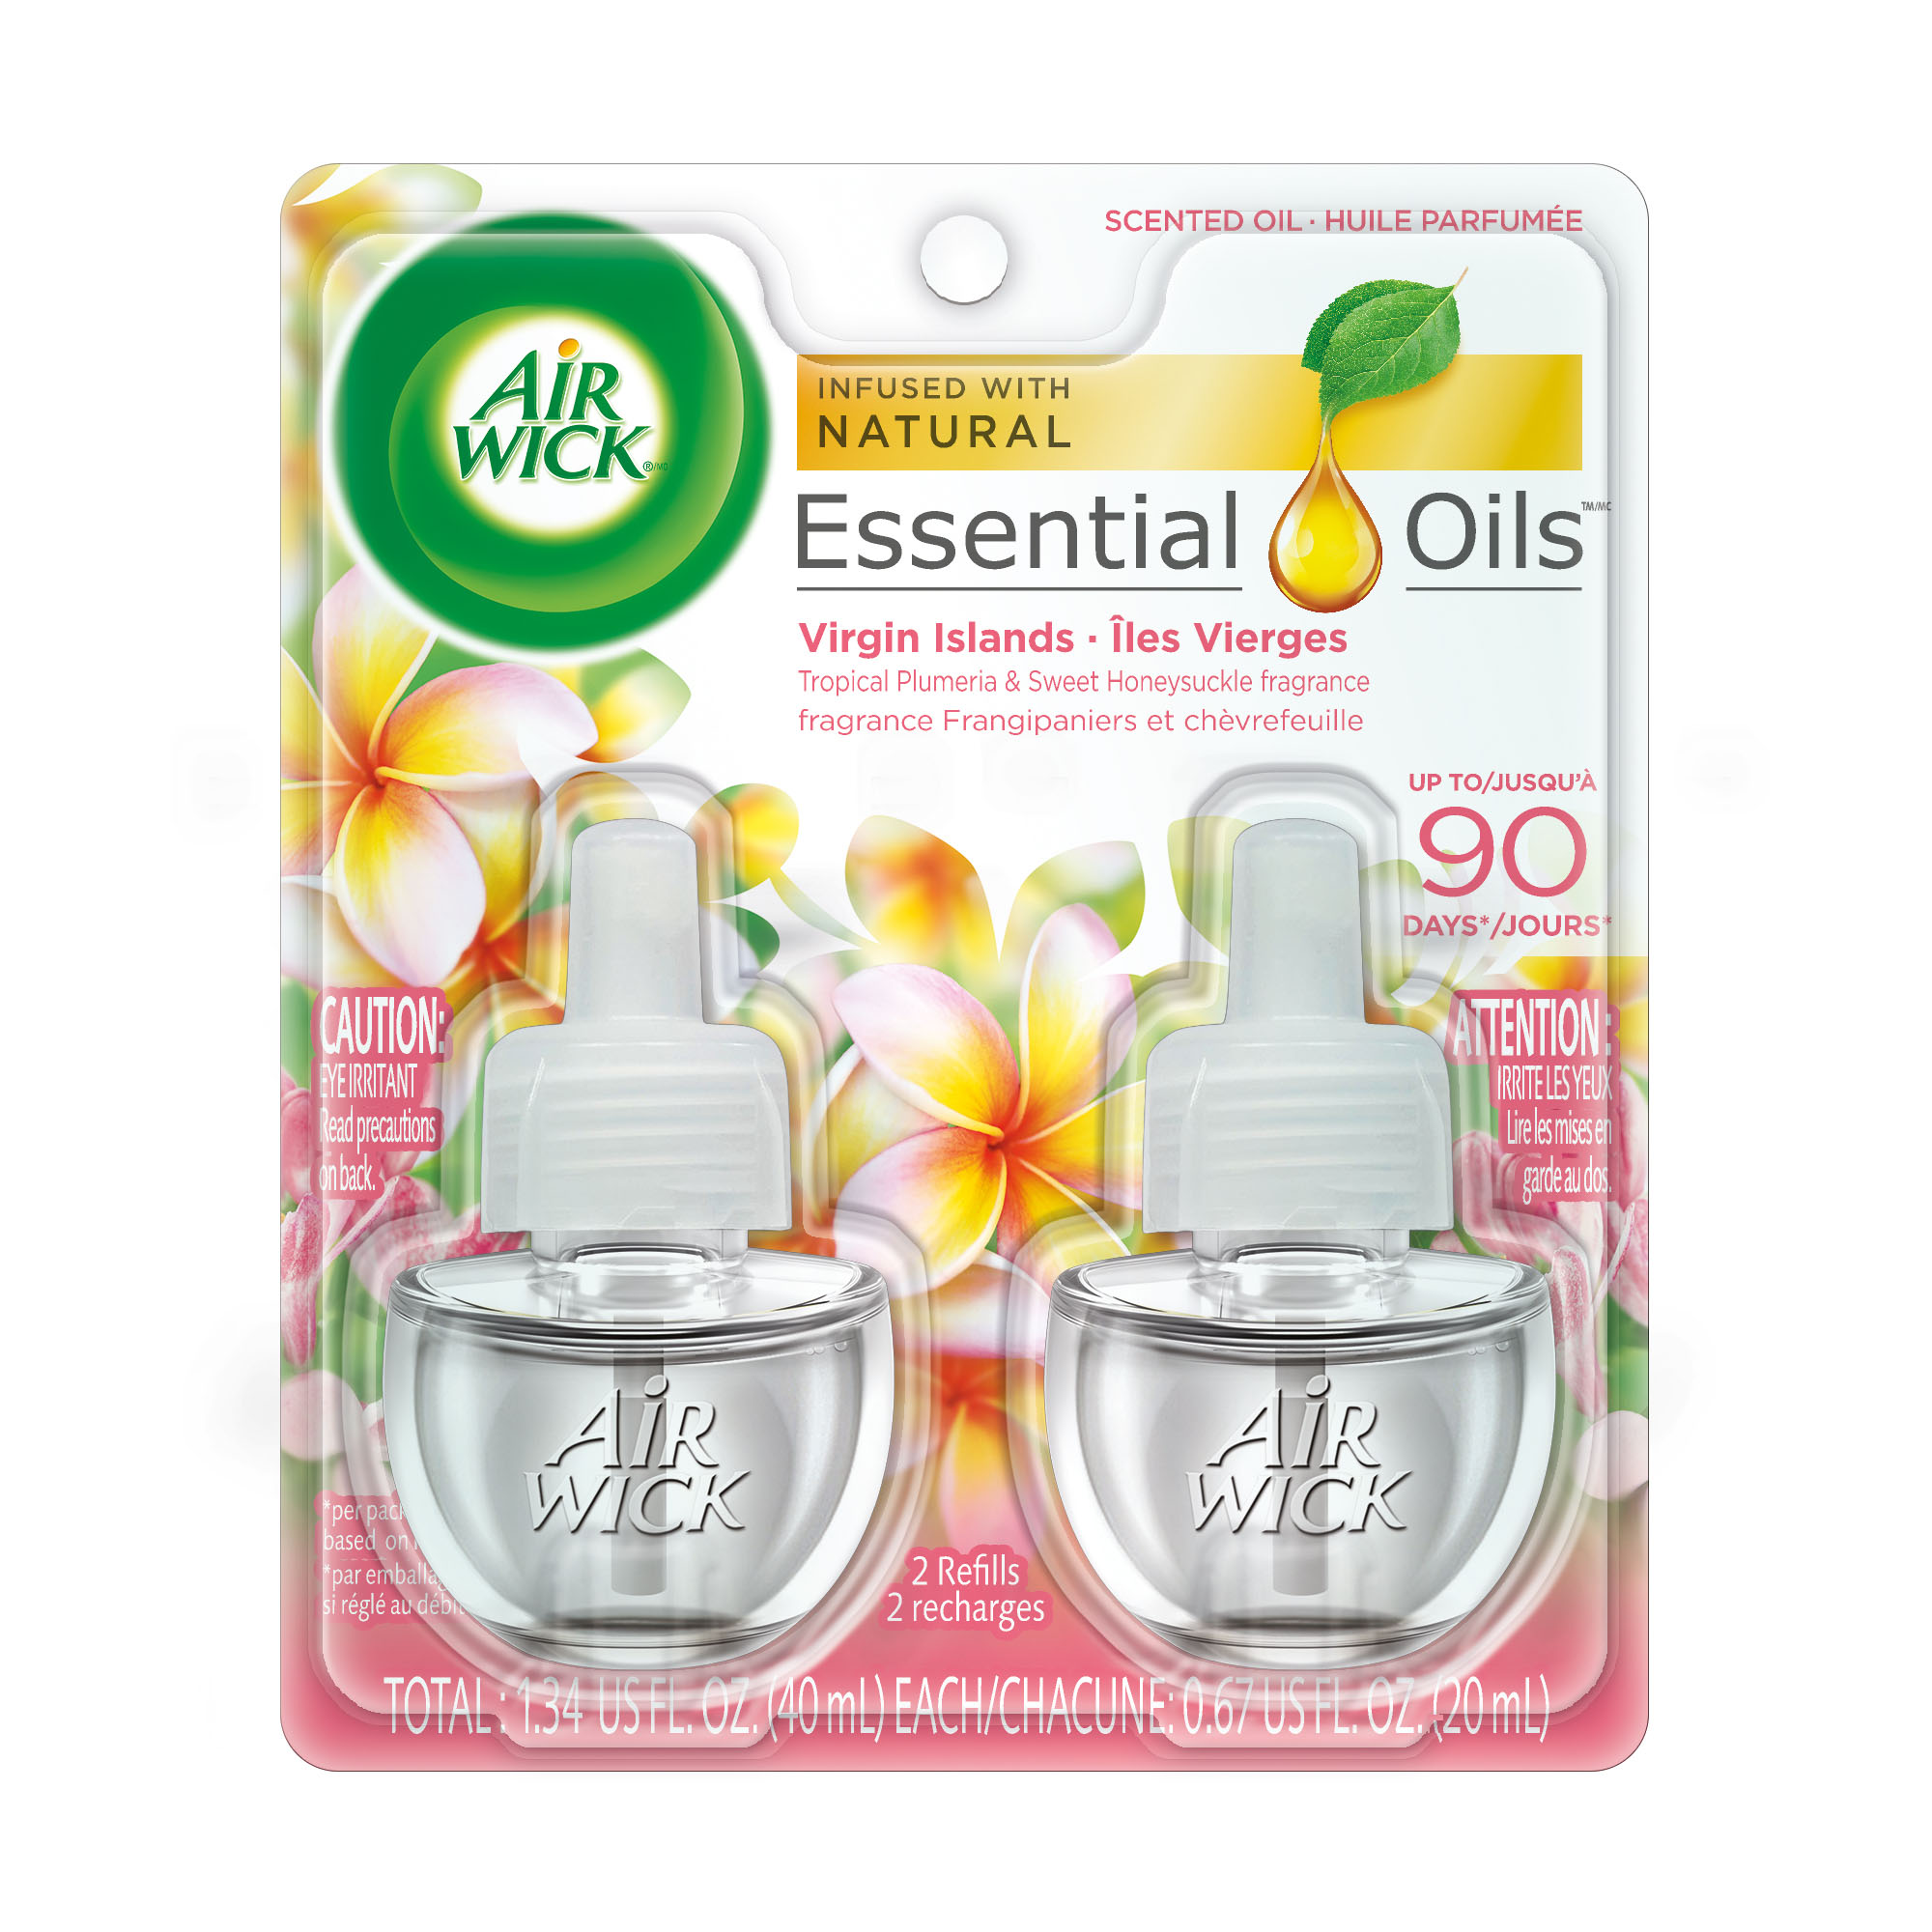 Air Wick Scented Oil 2 Refills, Virgin Islands, (2X0.67oz), Air Freshener